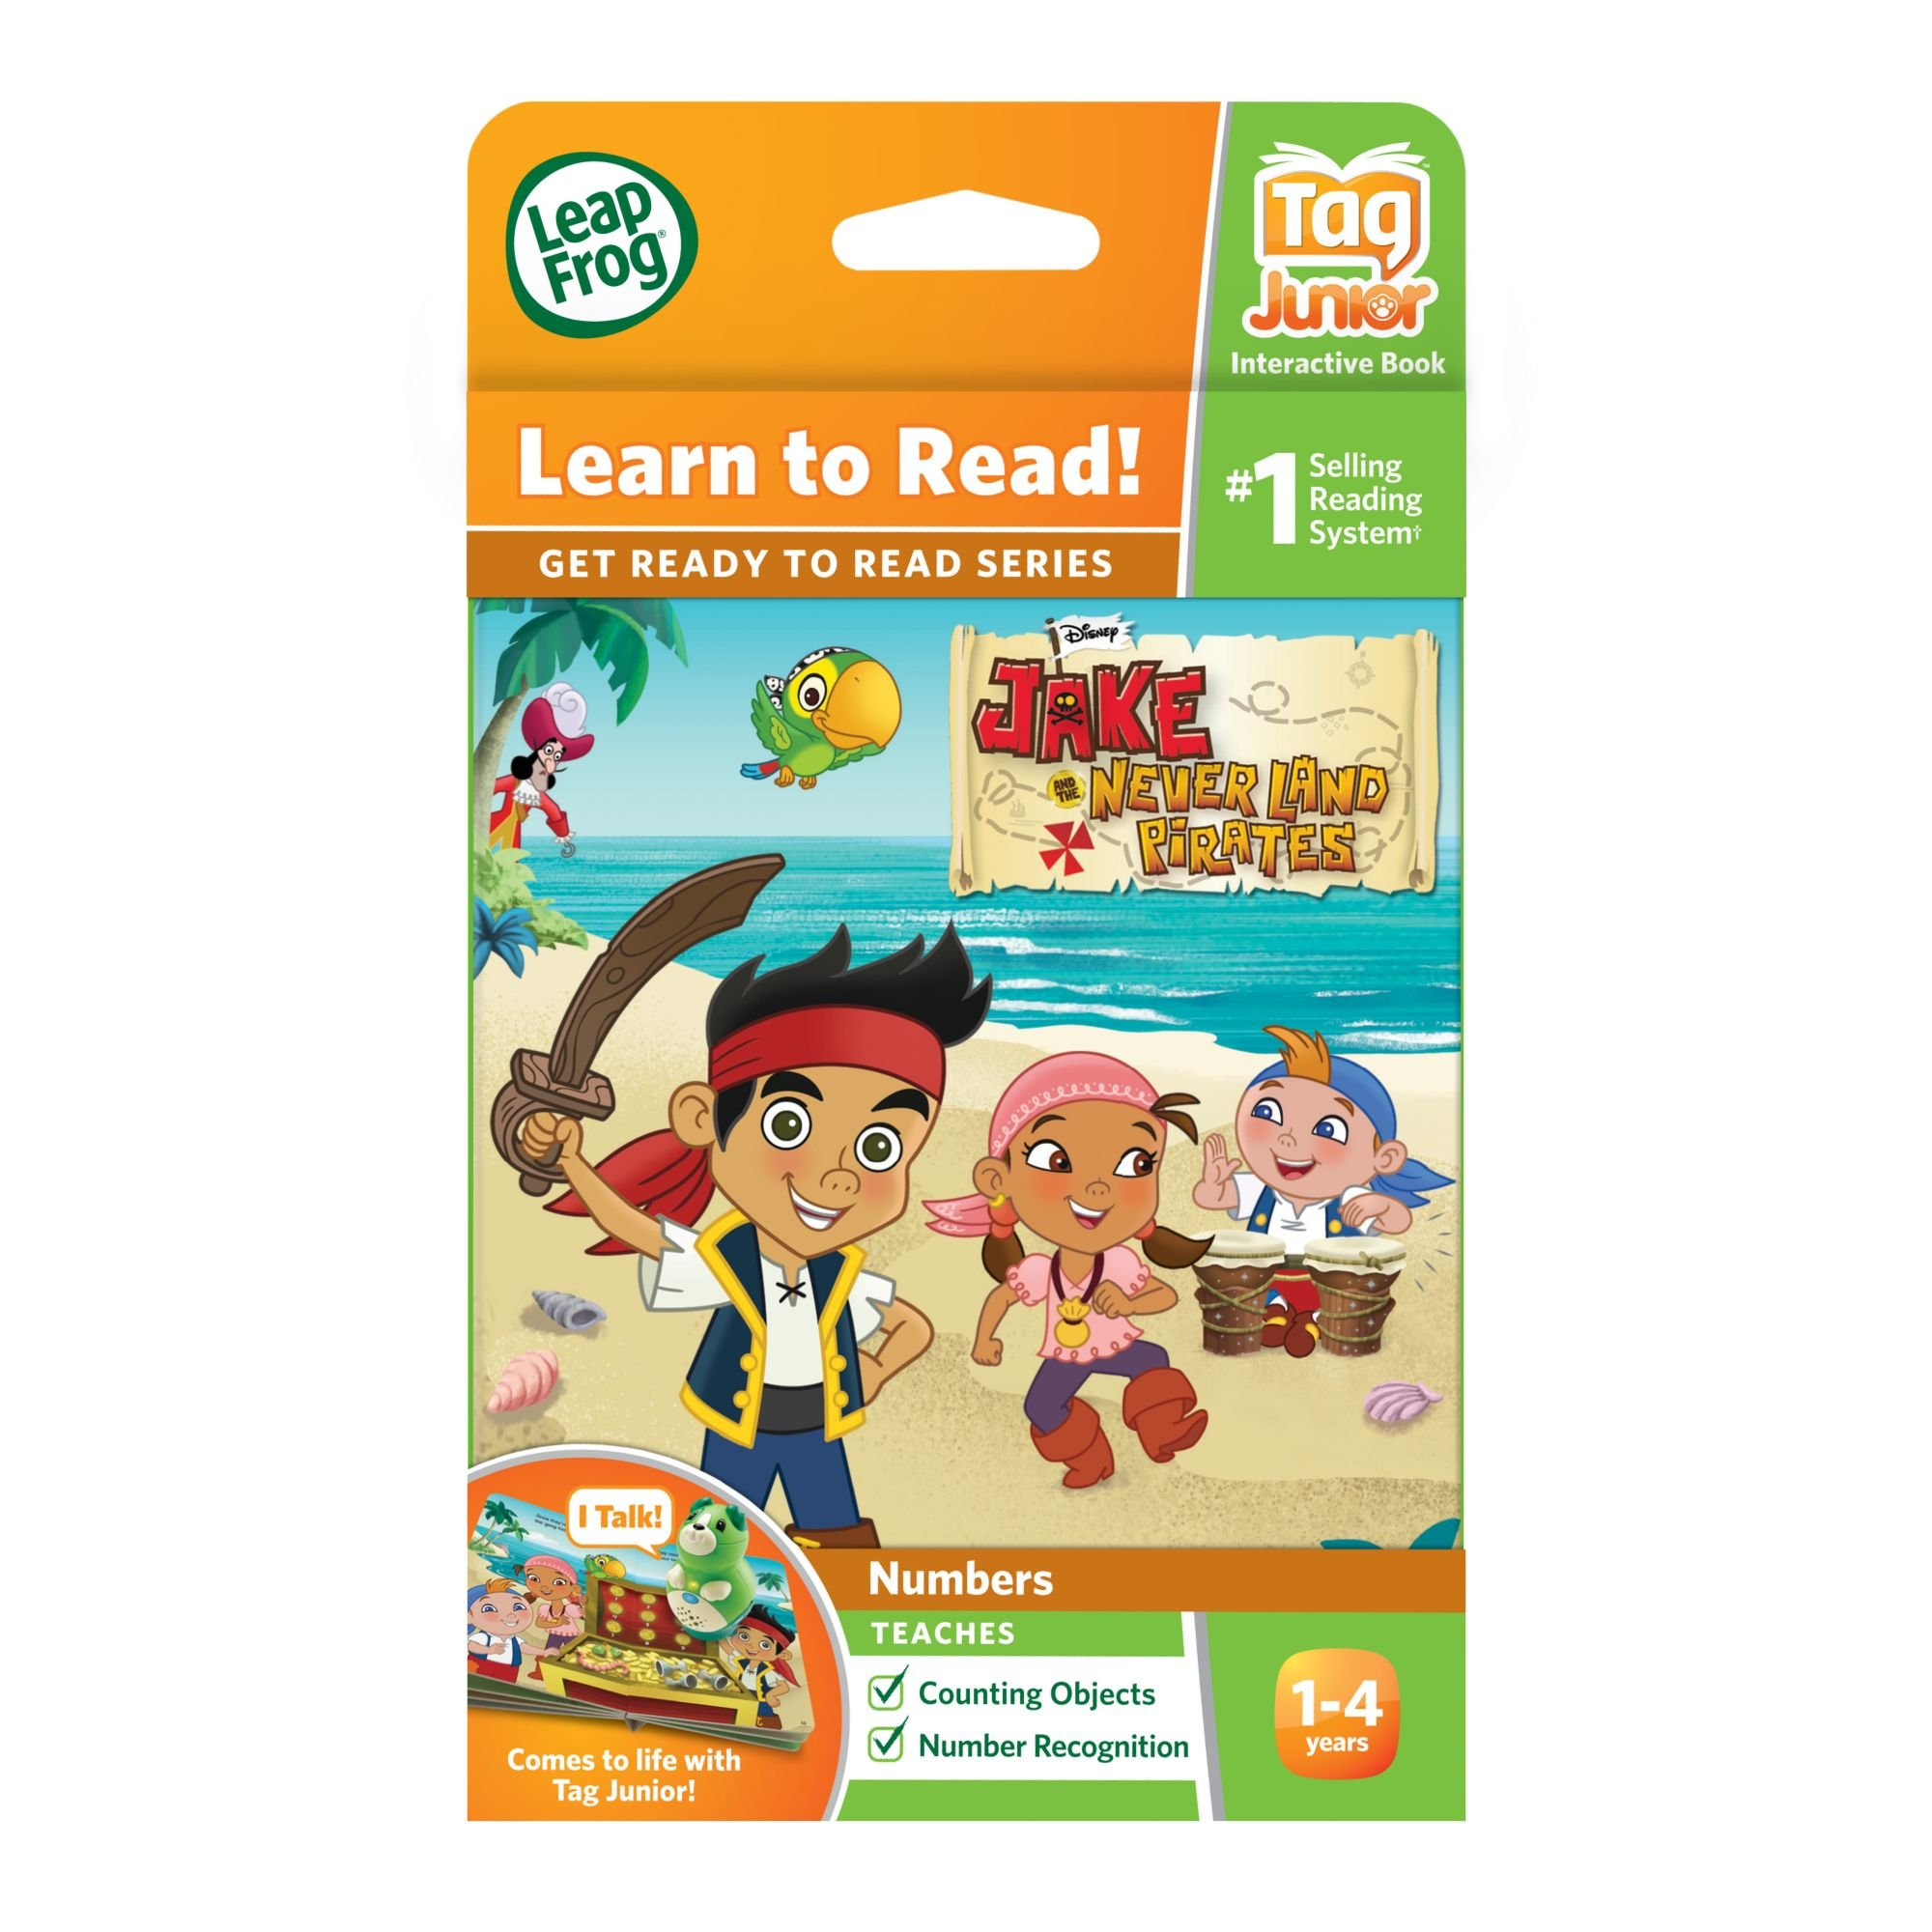 LeapFrog LeapReader Junior Book: Disney's Jake and the Never Land Pirates (works with Tag Junior) by LeapFrog (Image #4)